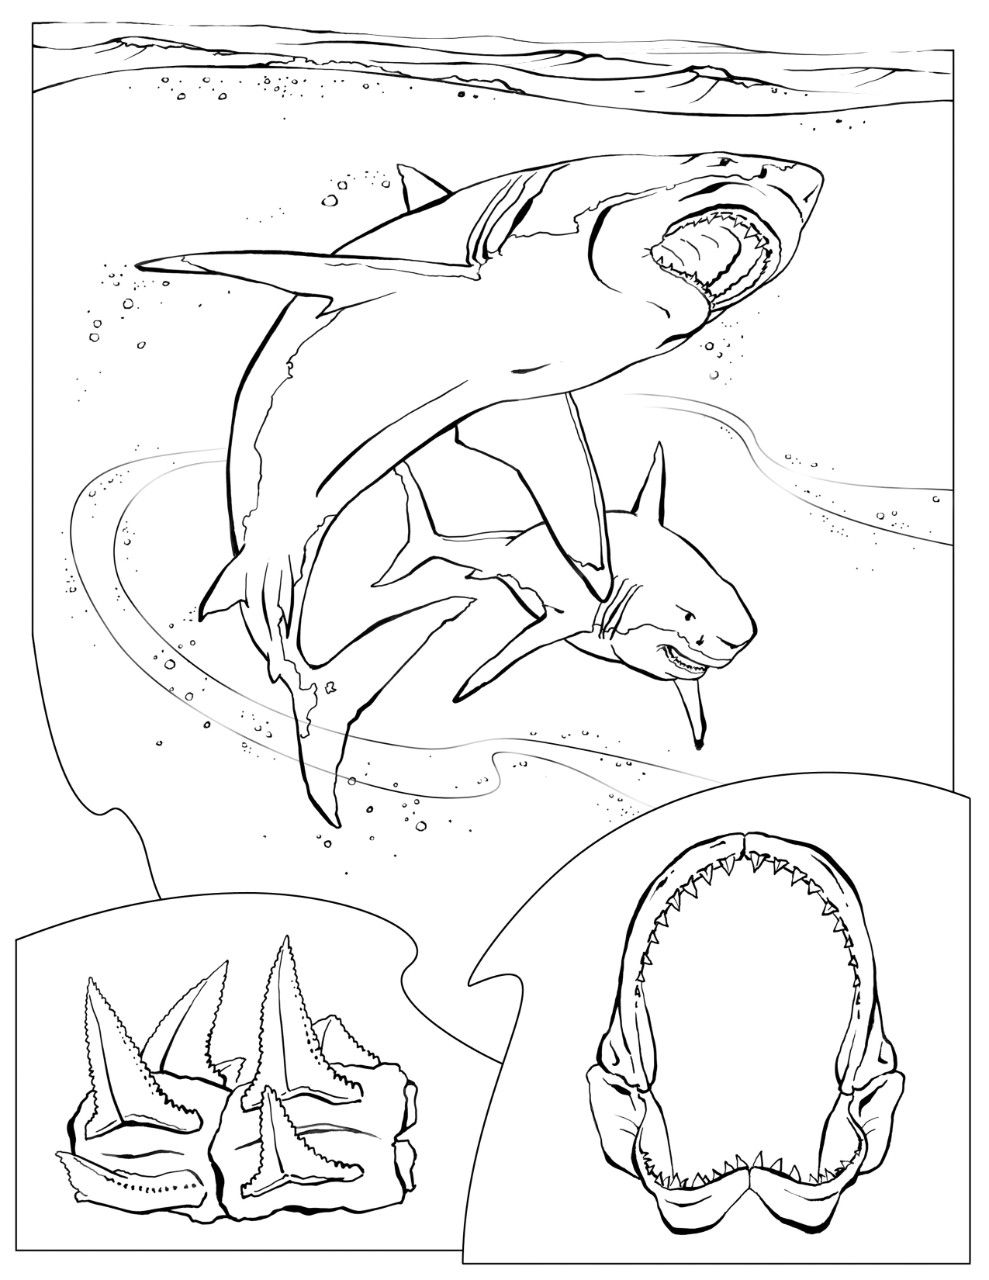 Free coloring pages national geographic - Sharks Shark Coloring Pages From National Geographic Kids